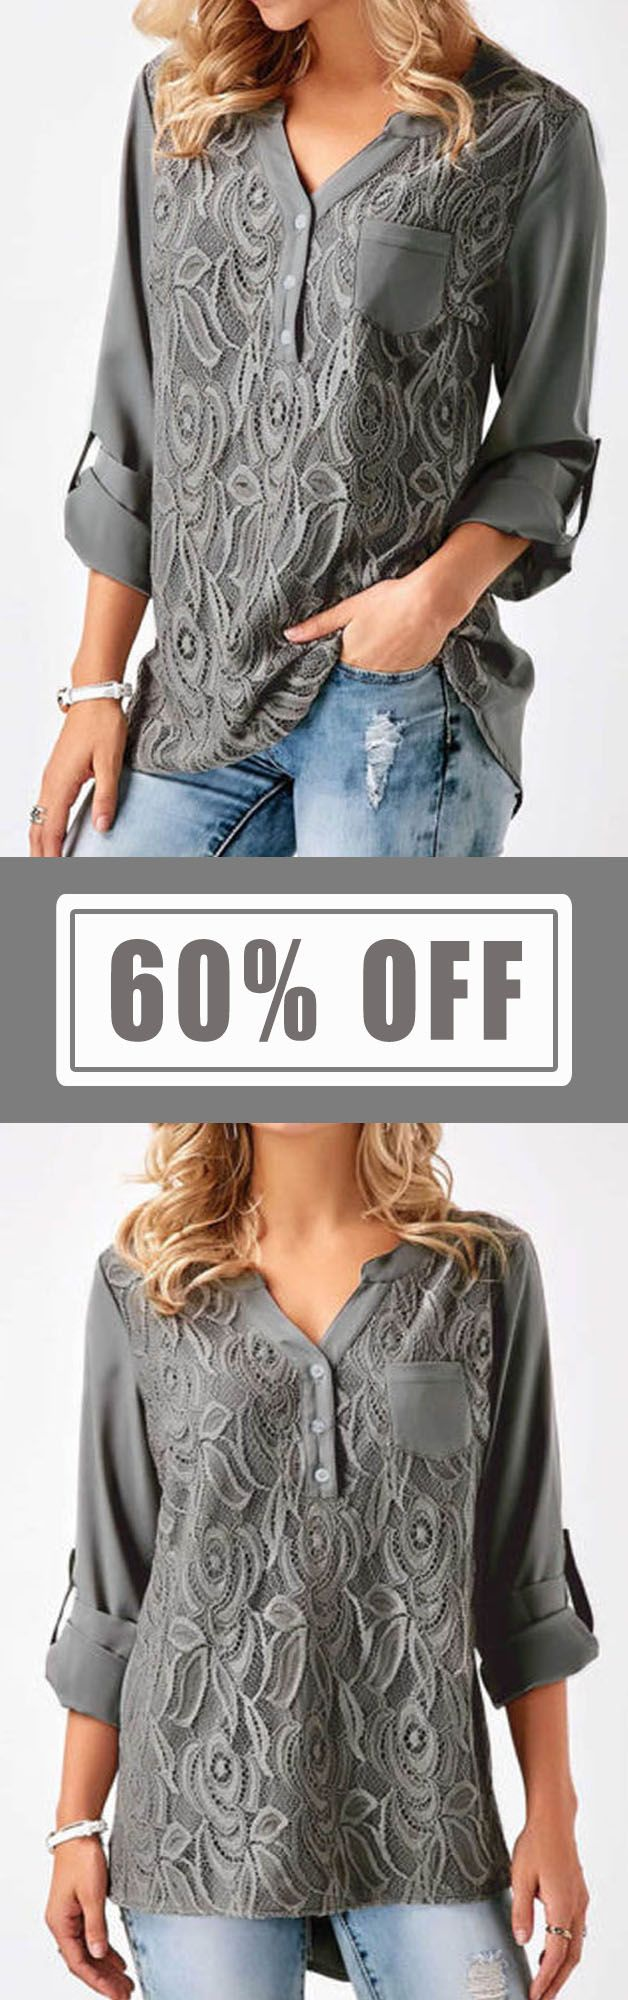 S-5XL Casual Women Lace Splicing V-Neck Shirt. Loose Style, Casual Style, Long Sleeve, V-Neck. Color:Black,Gray,Wine Red. Size:S,M,L,XL,XXL,XXXL,XXXXL,5XL. Buy now!  #women #blouse #fashion